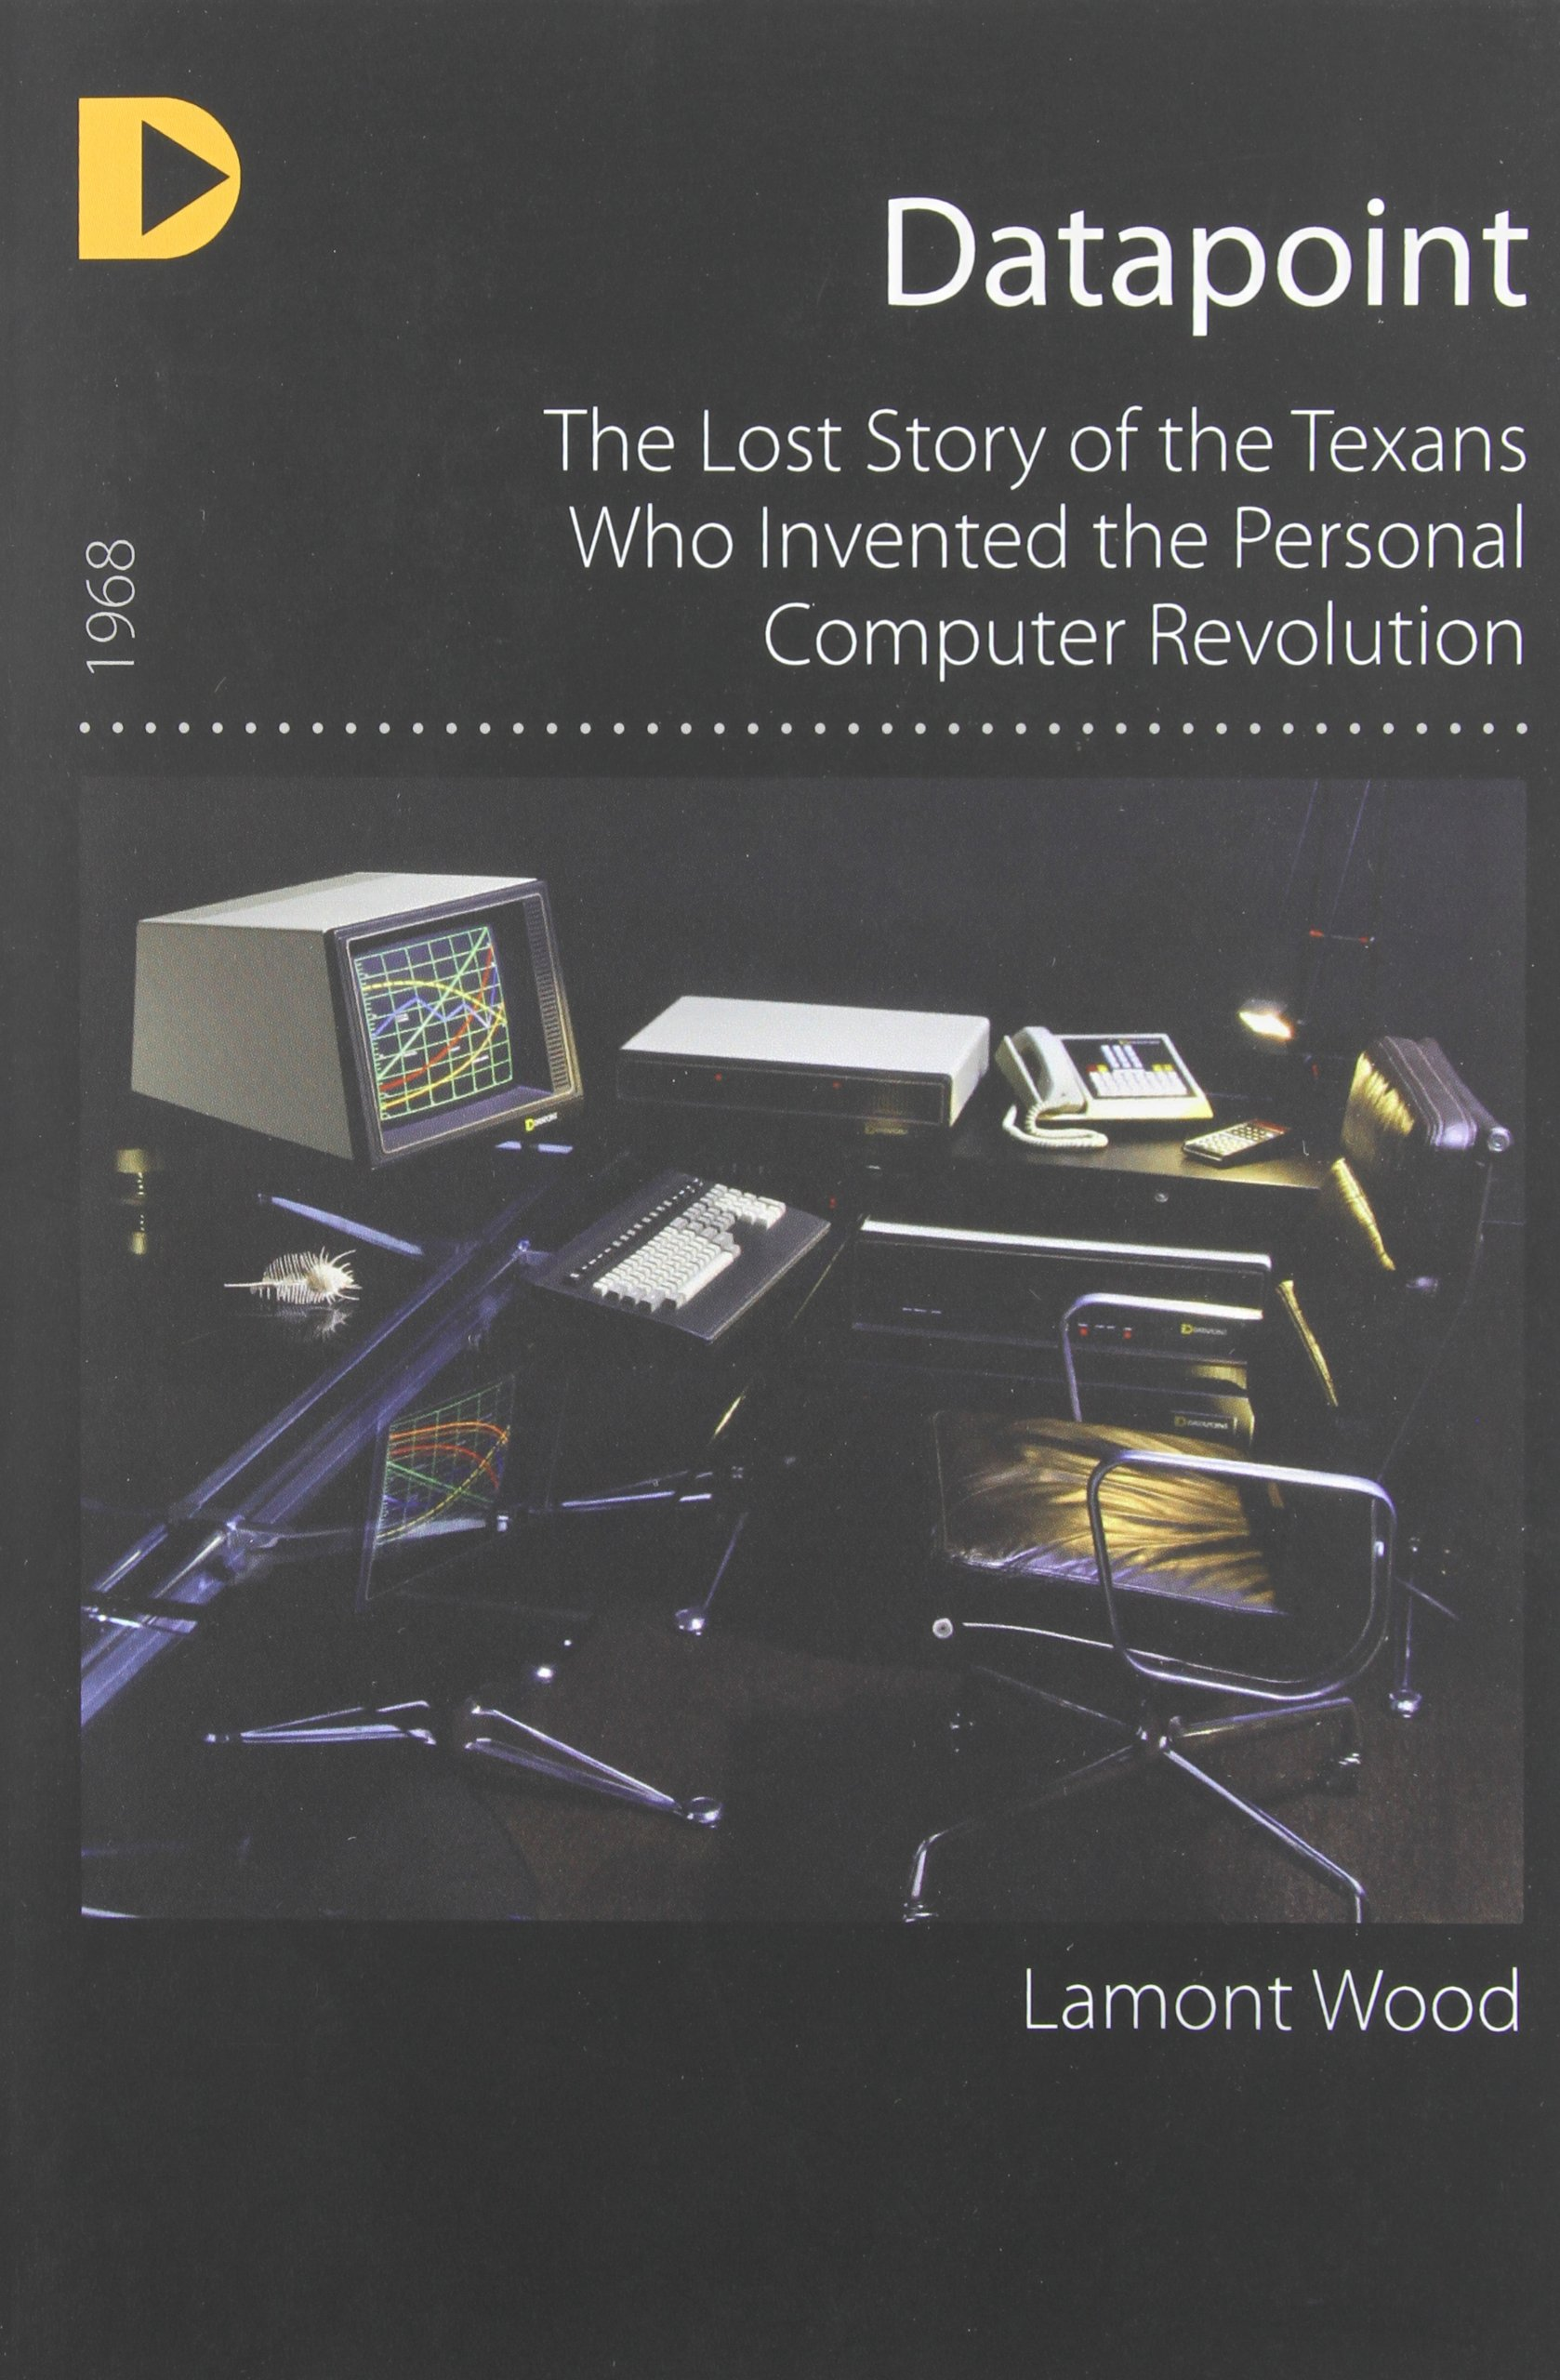 Datapoint: The Lost Story of the Texans Who Invented the Personal Computer Revolution pdf